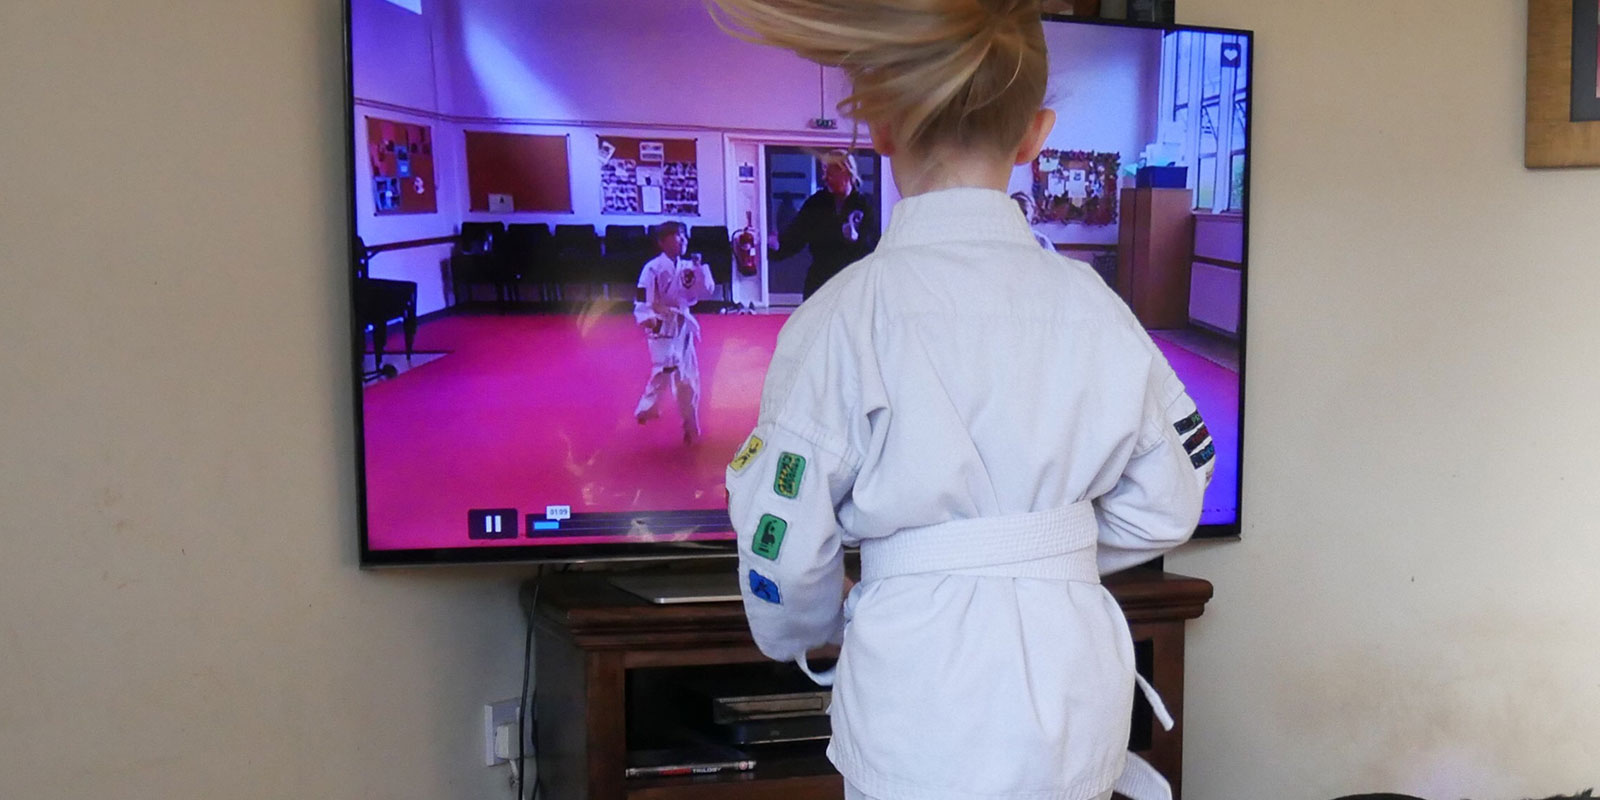 Live streamed kids karate classes